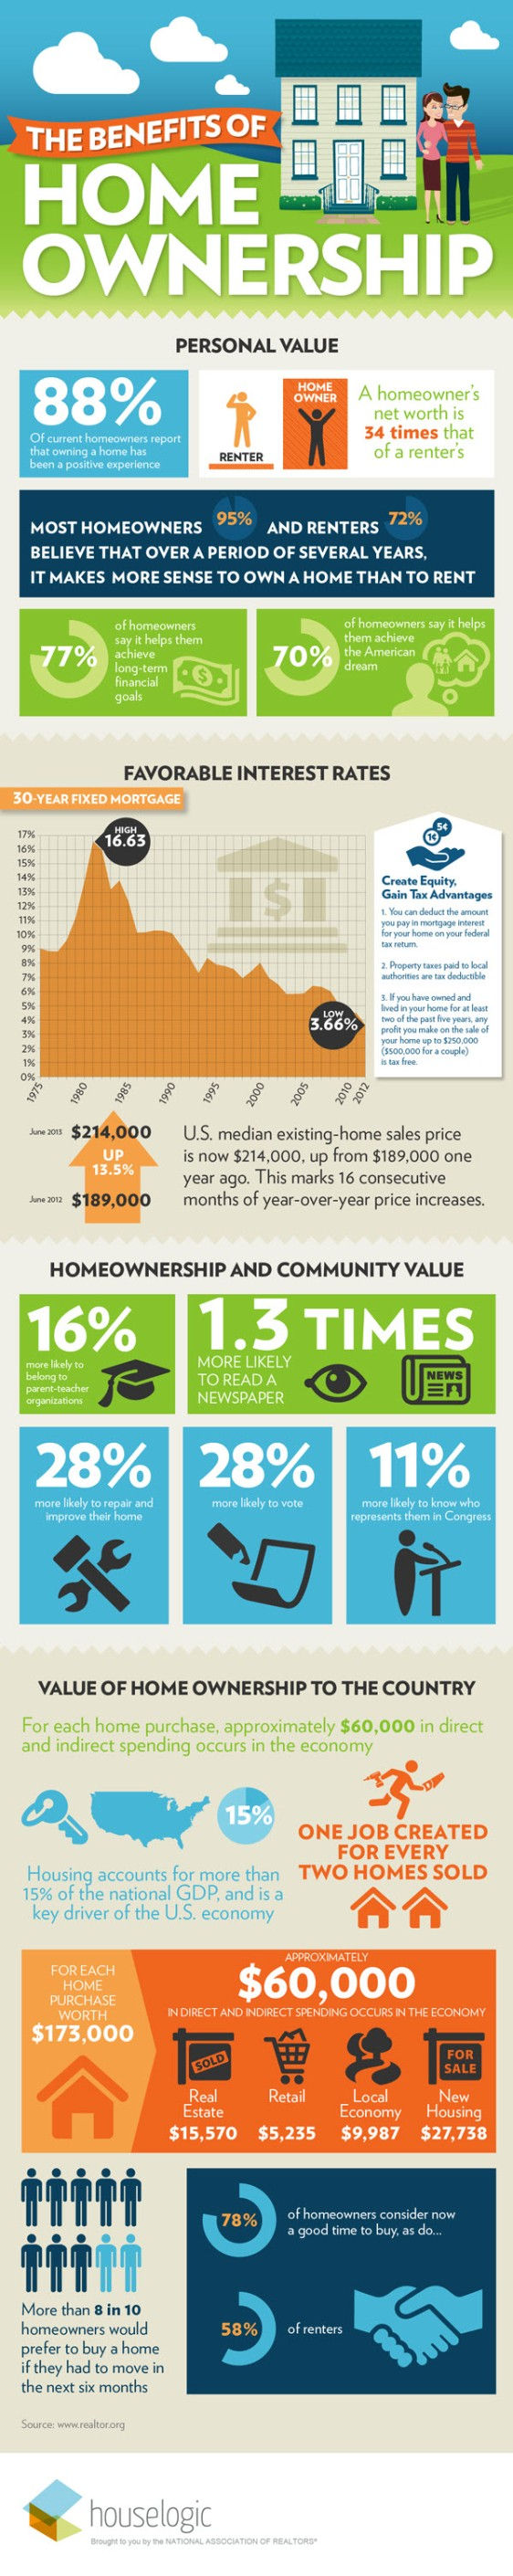 Infographic Benefits Homeownership_75469be0403817a5ce36a9bb01295469